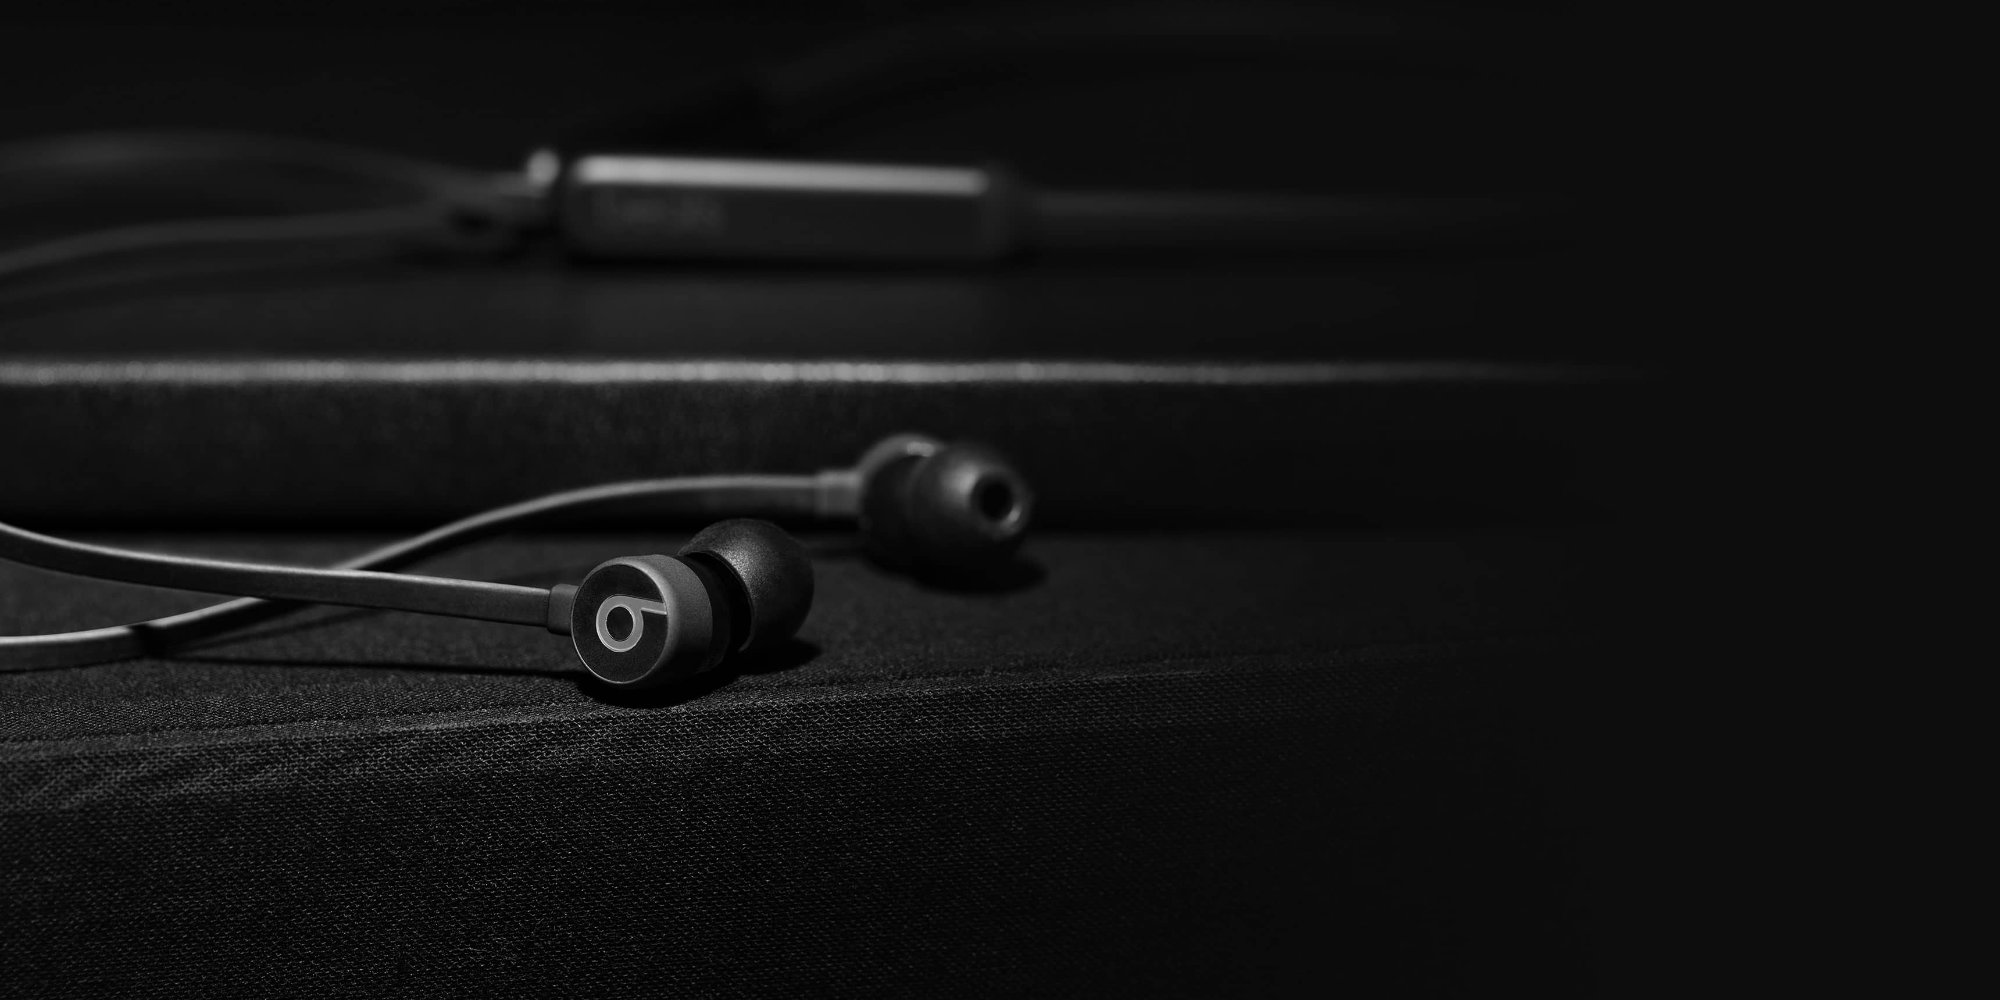 Apple BeatsX Earphones have returned to an Amazon low, priced from $76 - 9to5Toys